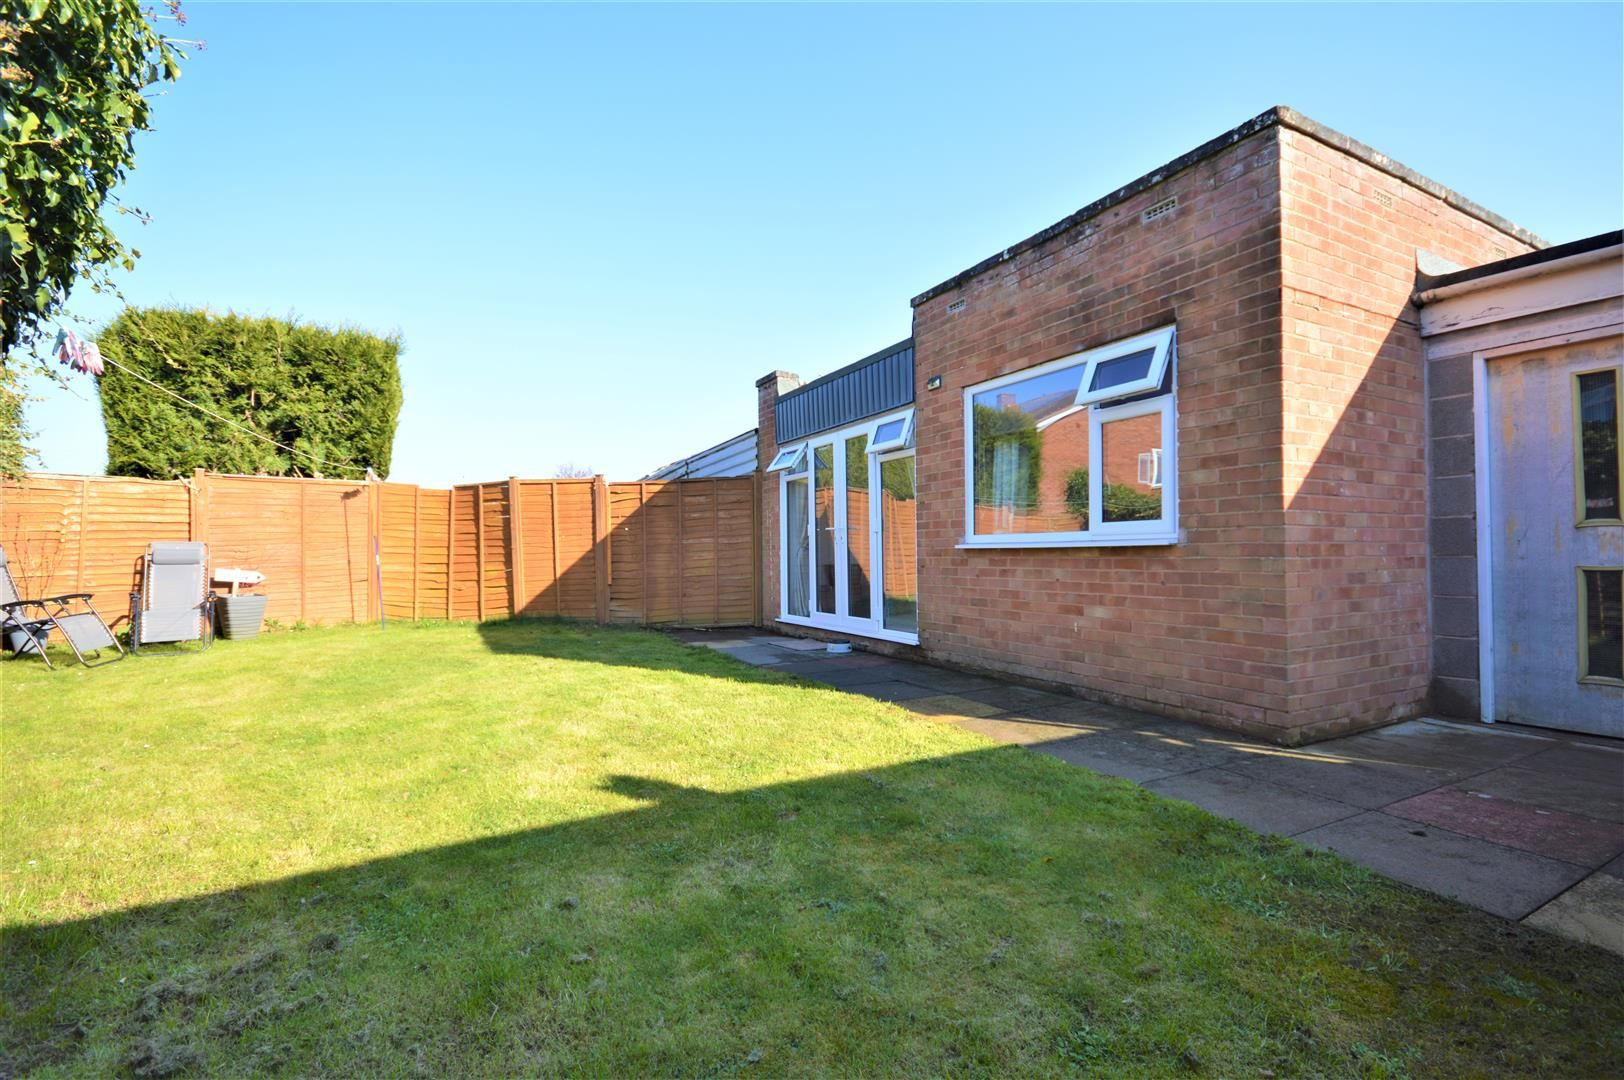 2 bed semi-detached-bungalow for sale in Marden  - Property Image 9